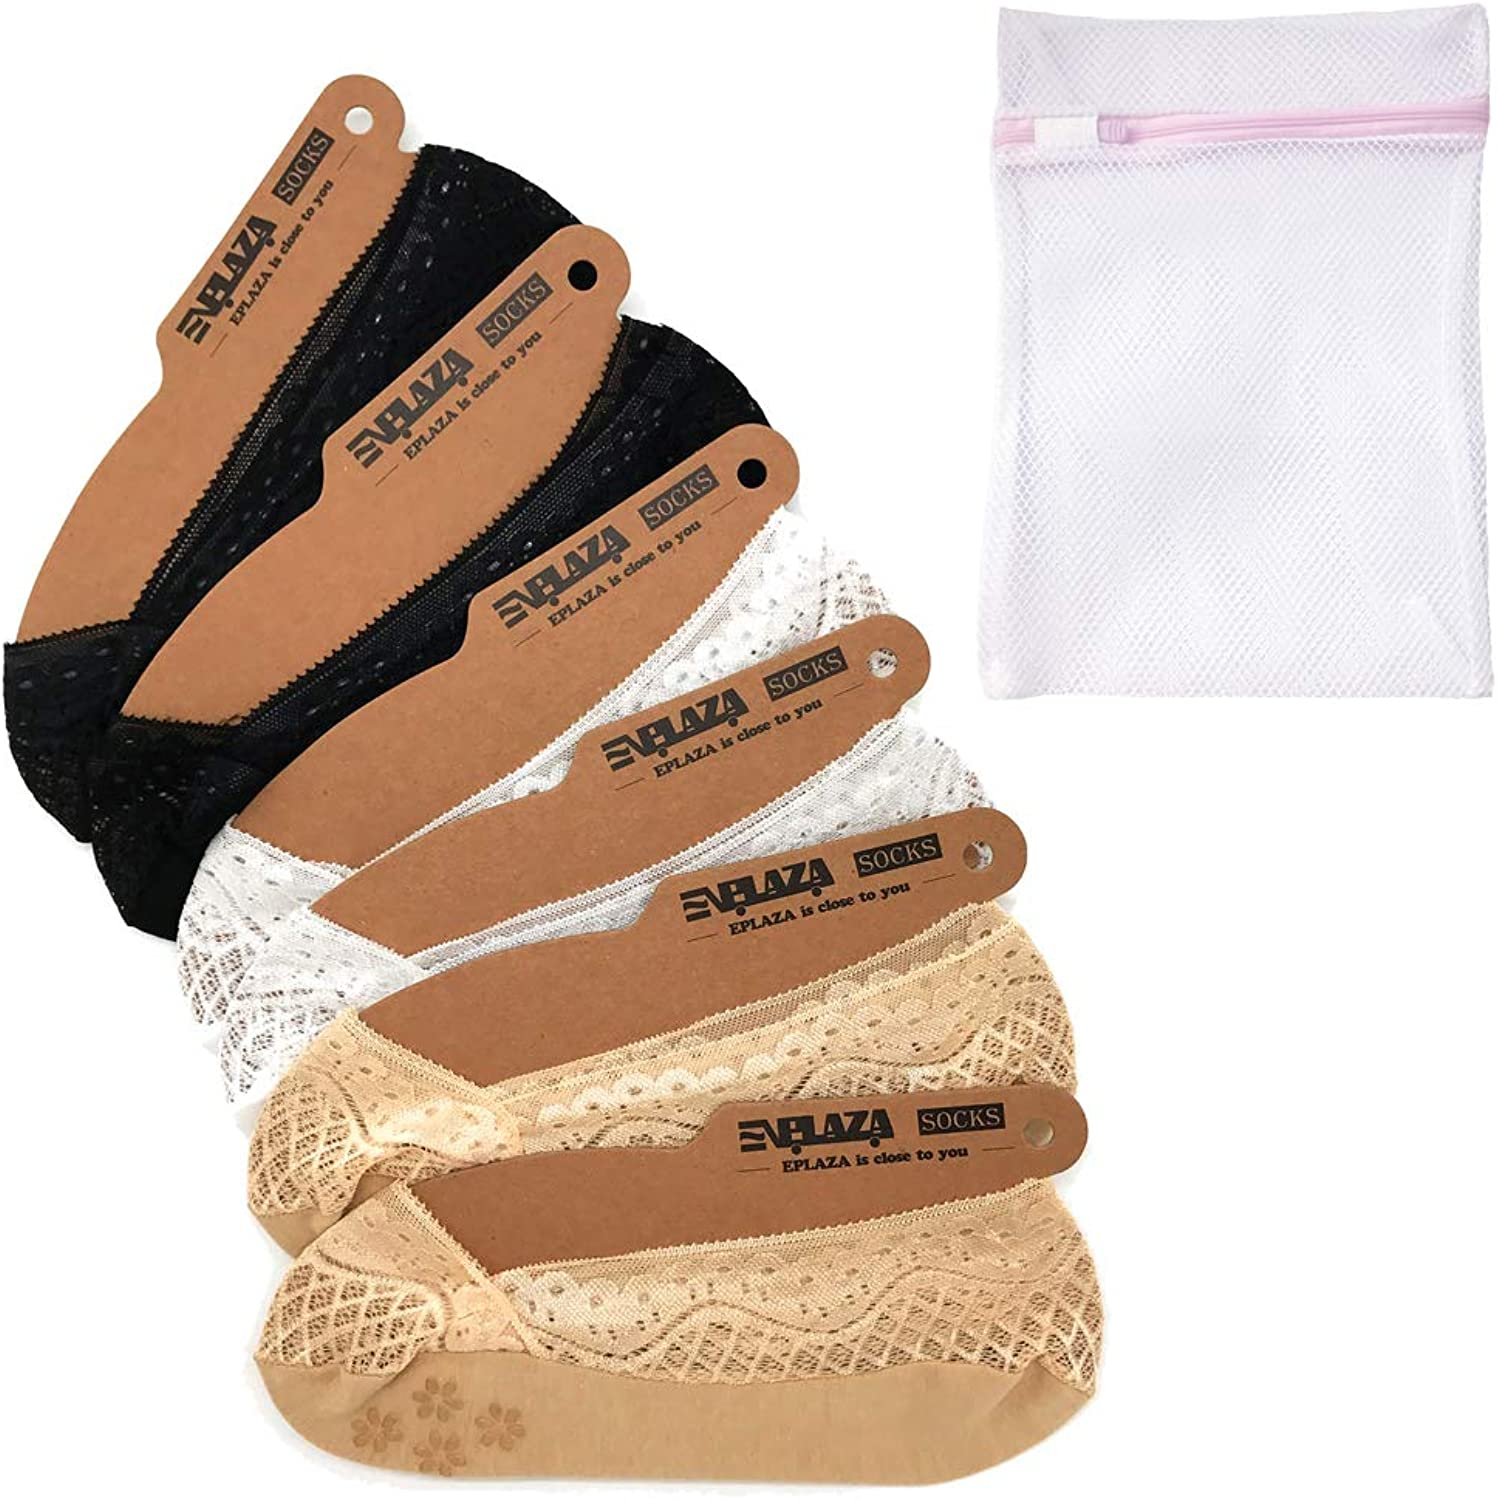 EPLAZA 6 Pairs Silicone Grip Women Lace No Show Socks NonSkid + 1 Wash Bag